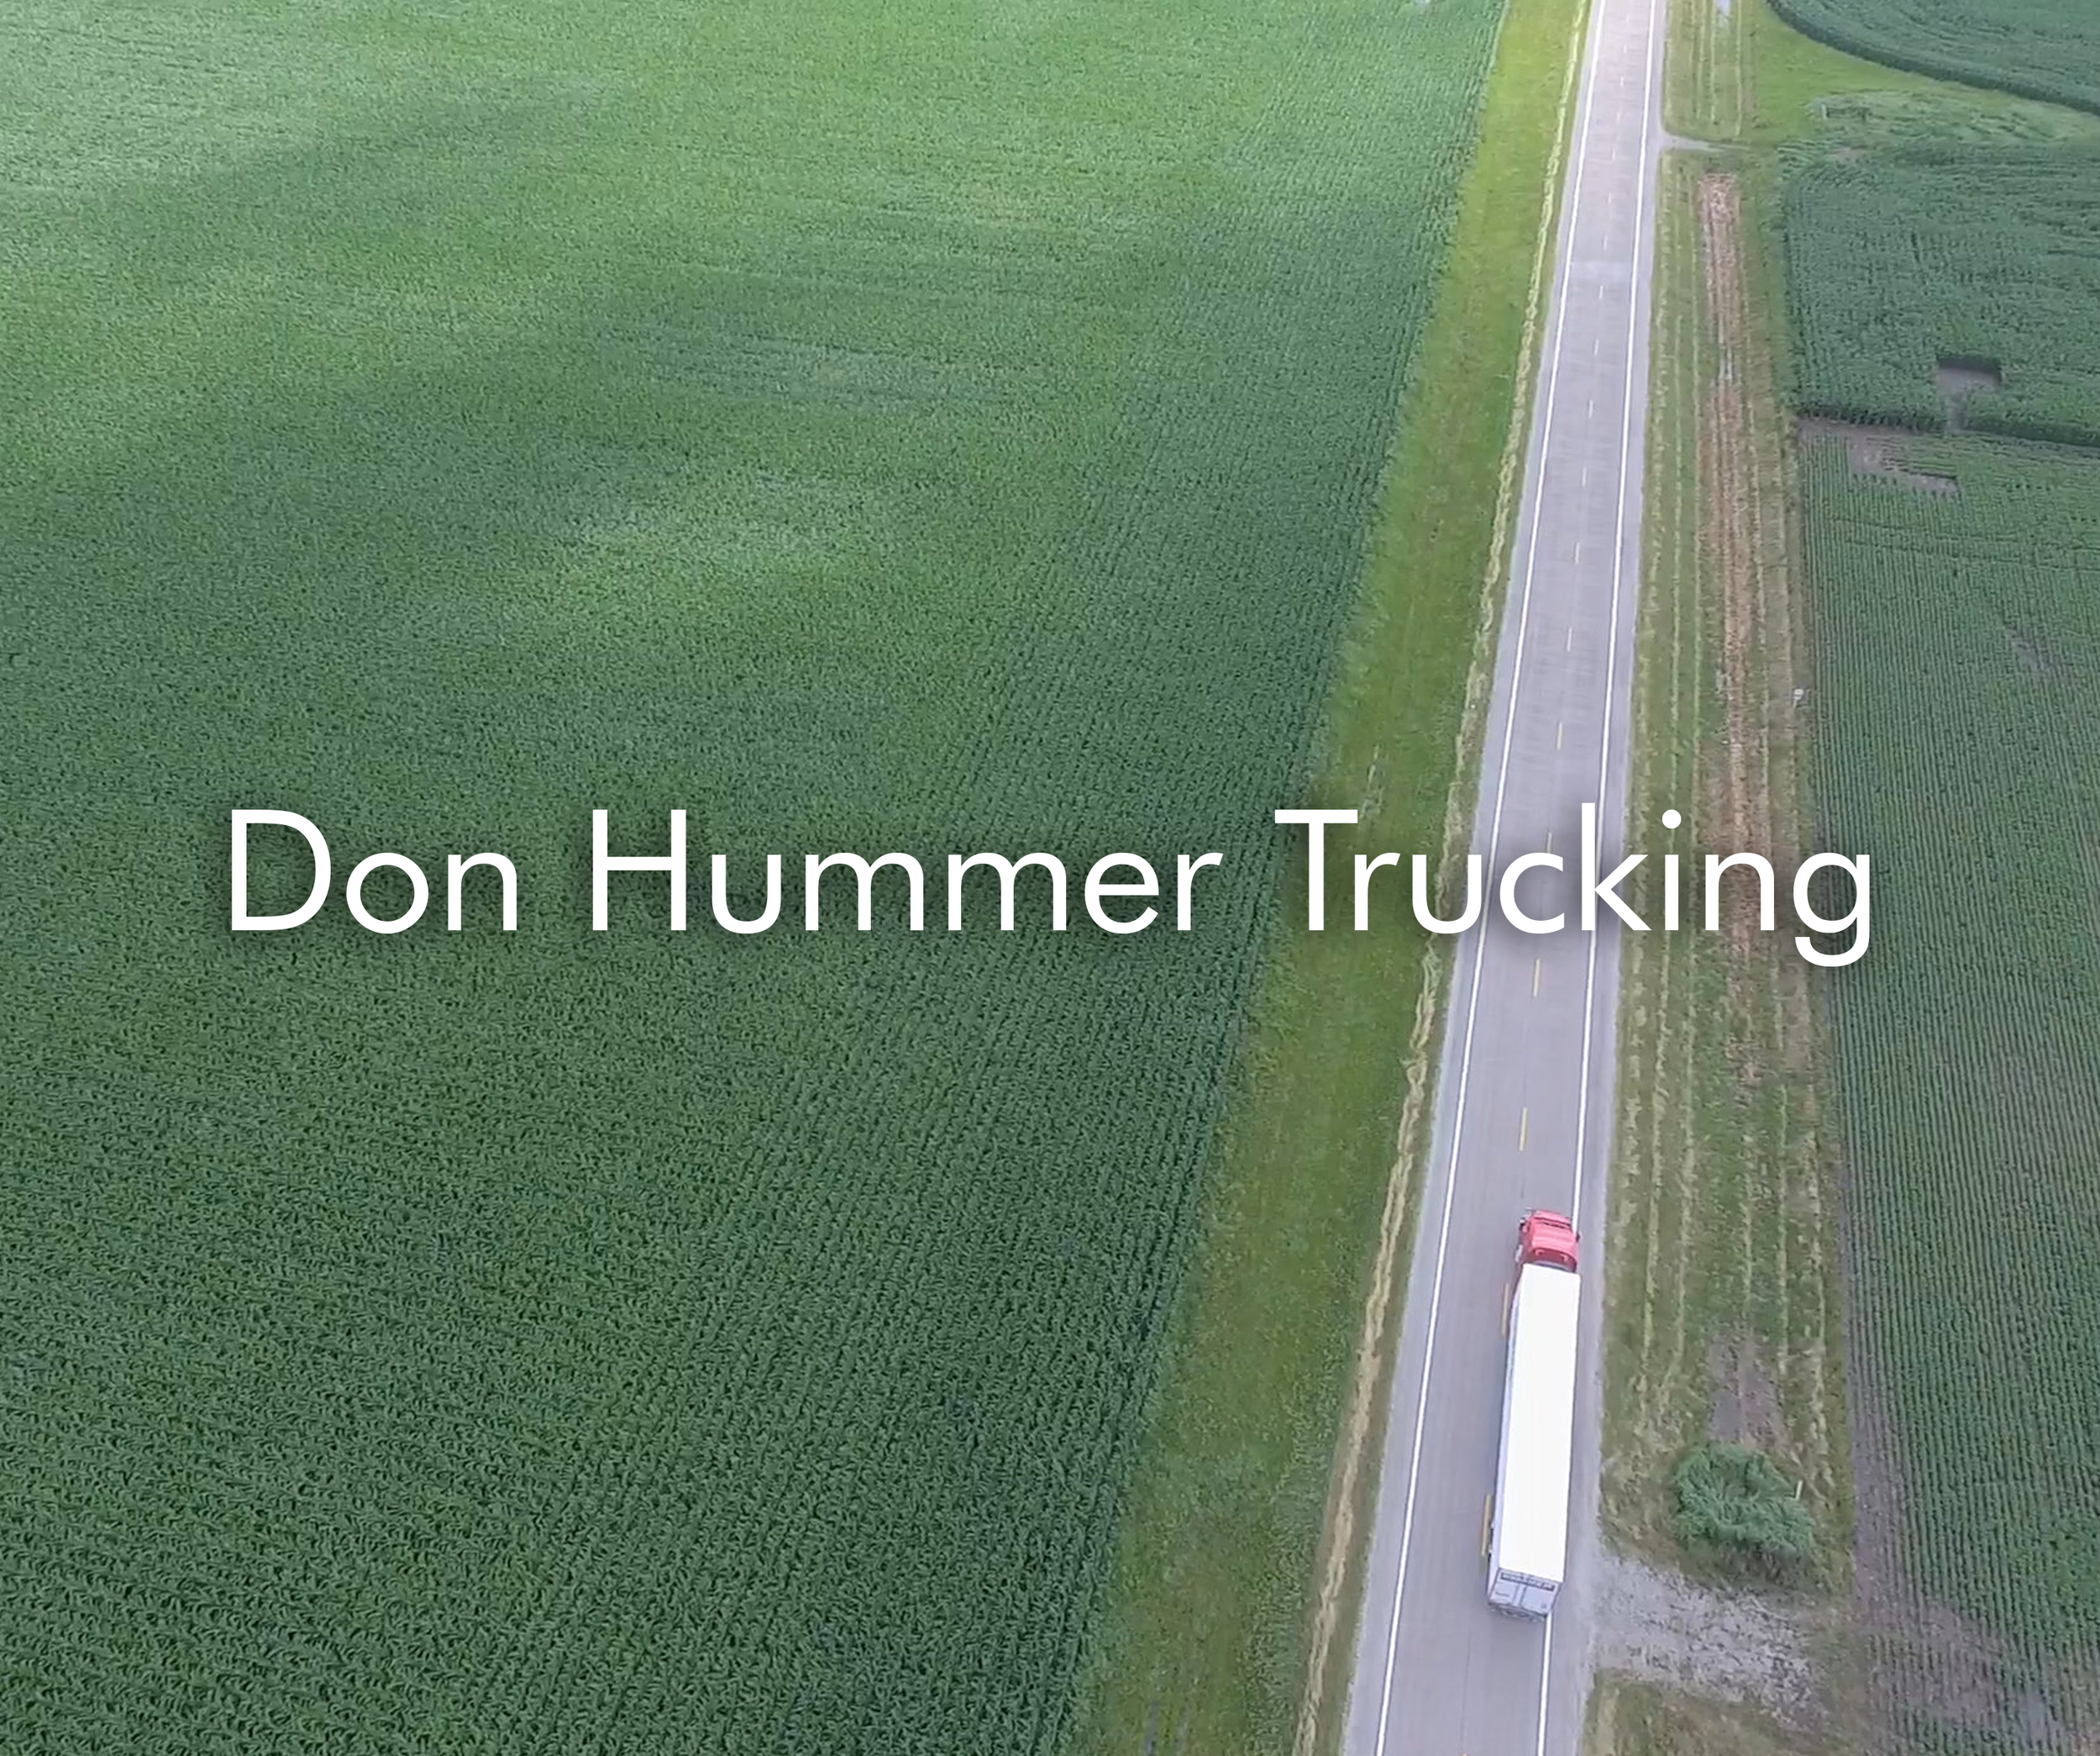 Don Hummer Trucking Words.png